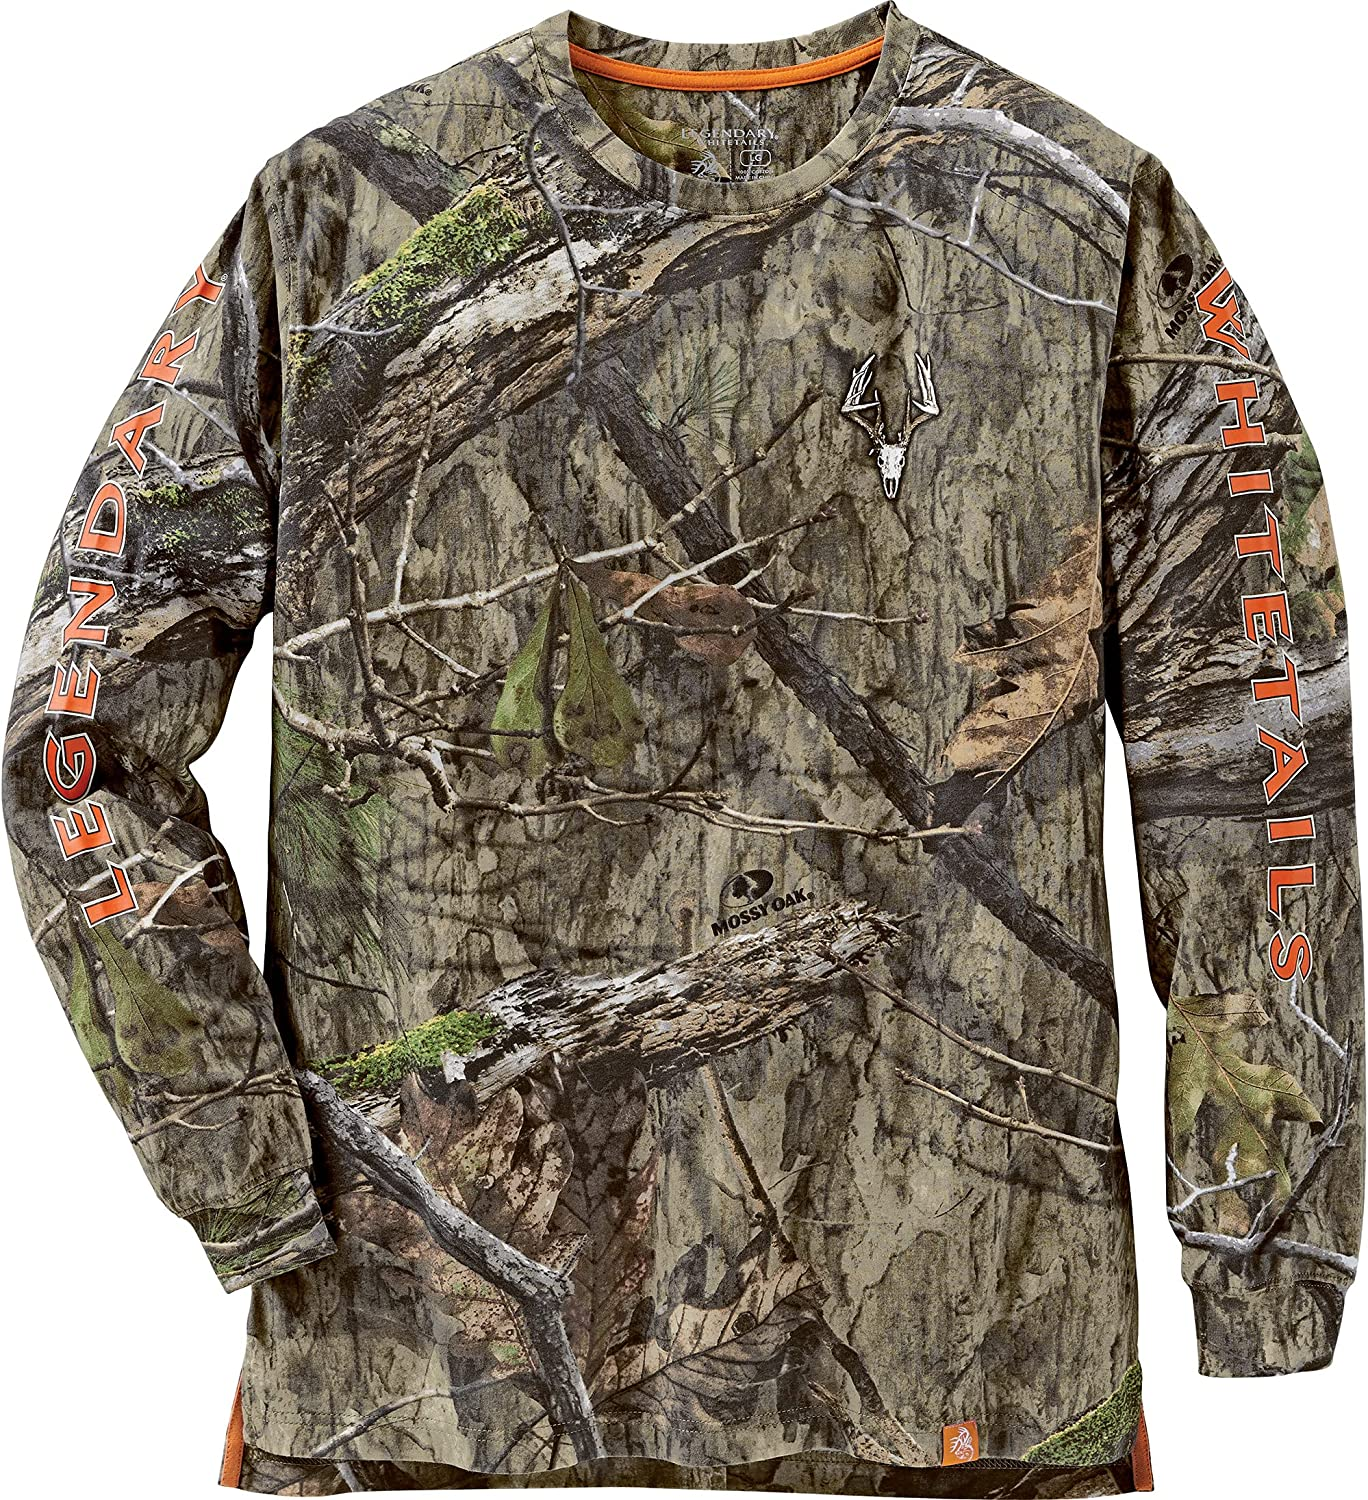 Legendary Whitetails Men's Non-Typical NEW before selling Long T-Shirt Mossy Sleeve NEW before selling ☆